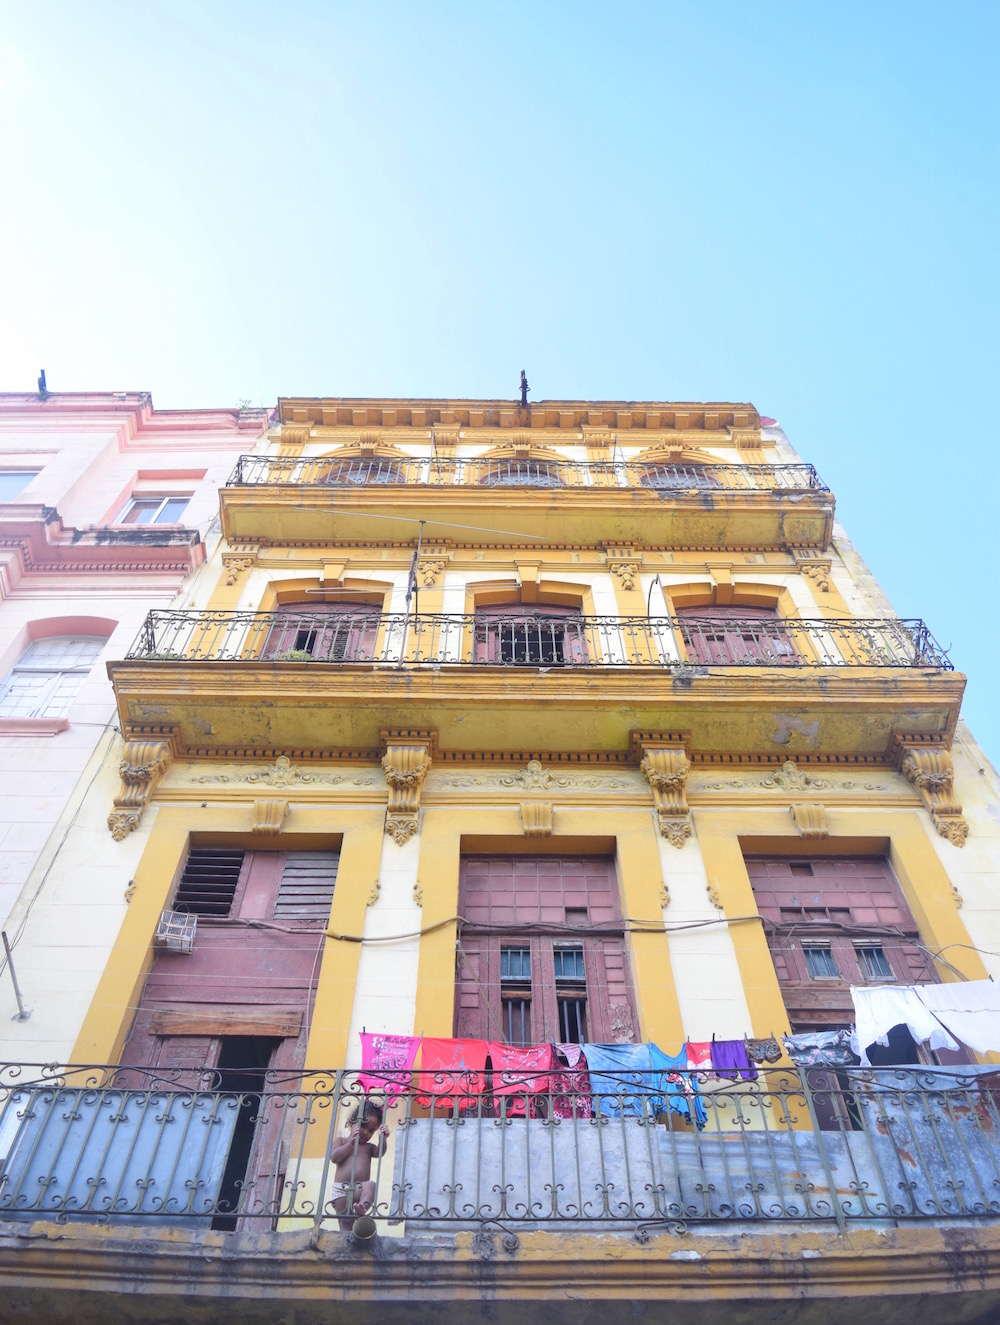 a colorful building in Central Havana